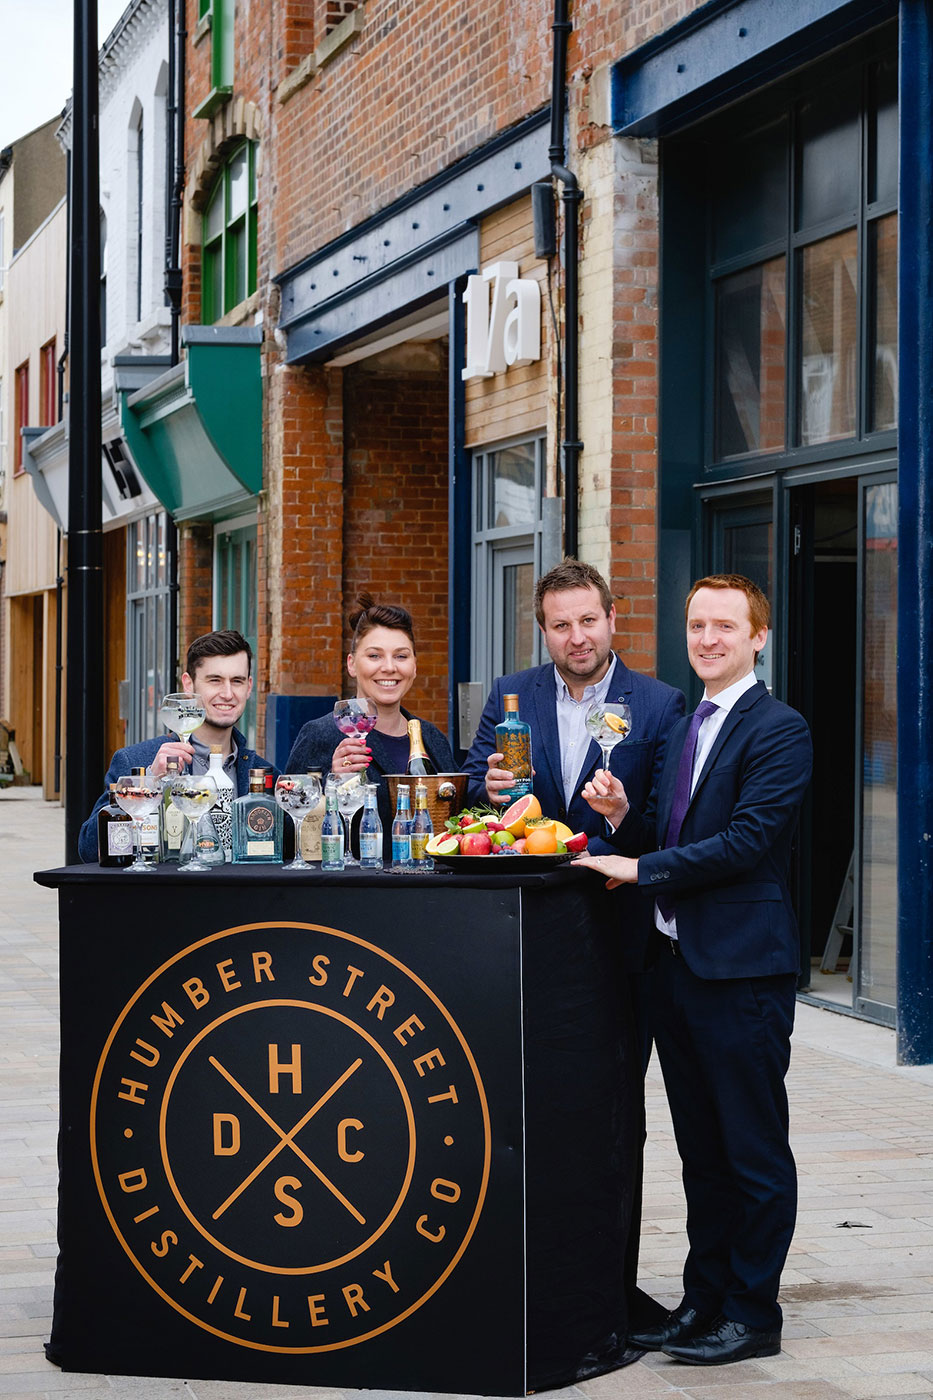 Humber Street Distillery Co is the latest investment to be announced in Hull's rapidly-evolving Fruit Market waterside district. Pictured are owners Lee Kirman and Charlotte Bailey, centre, with Manager Craig Heads, left, and Wykeland Group's Tom Watson.